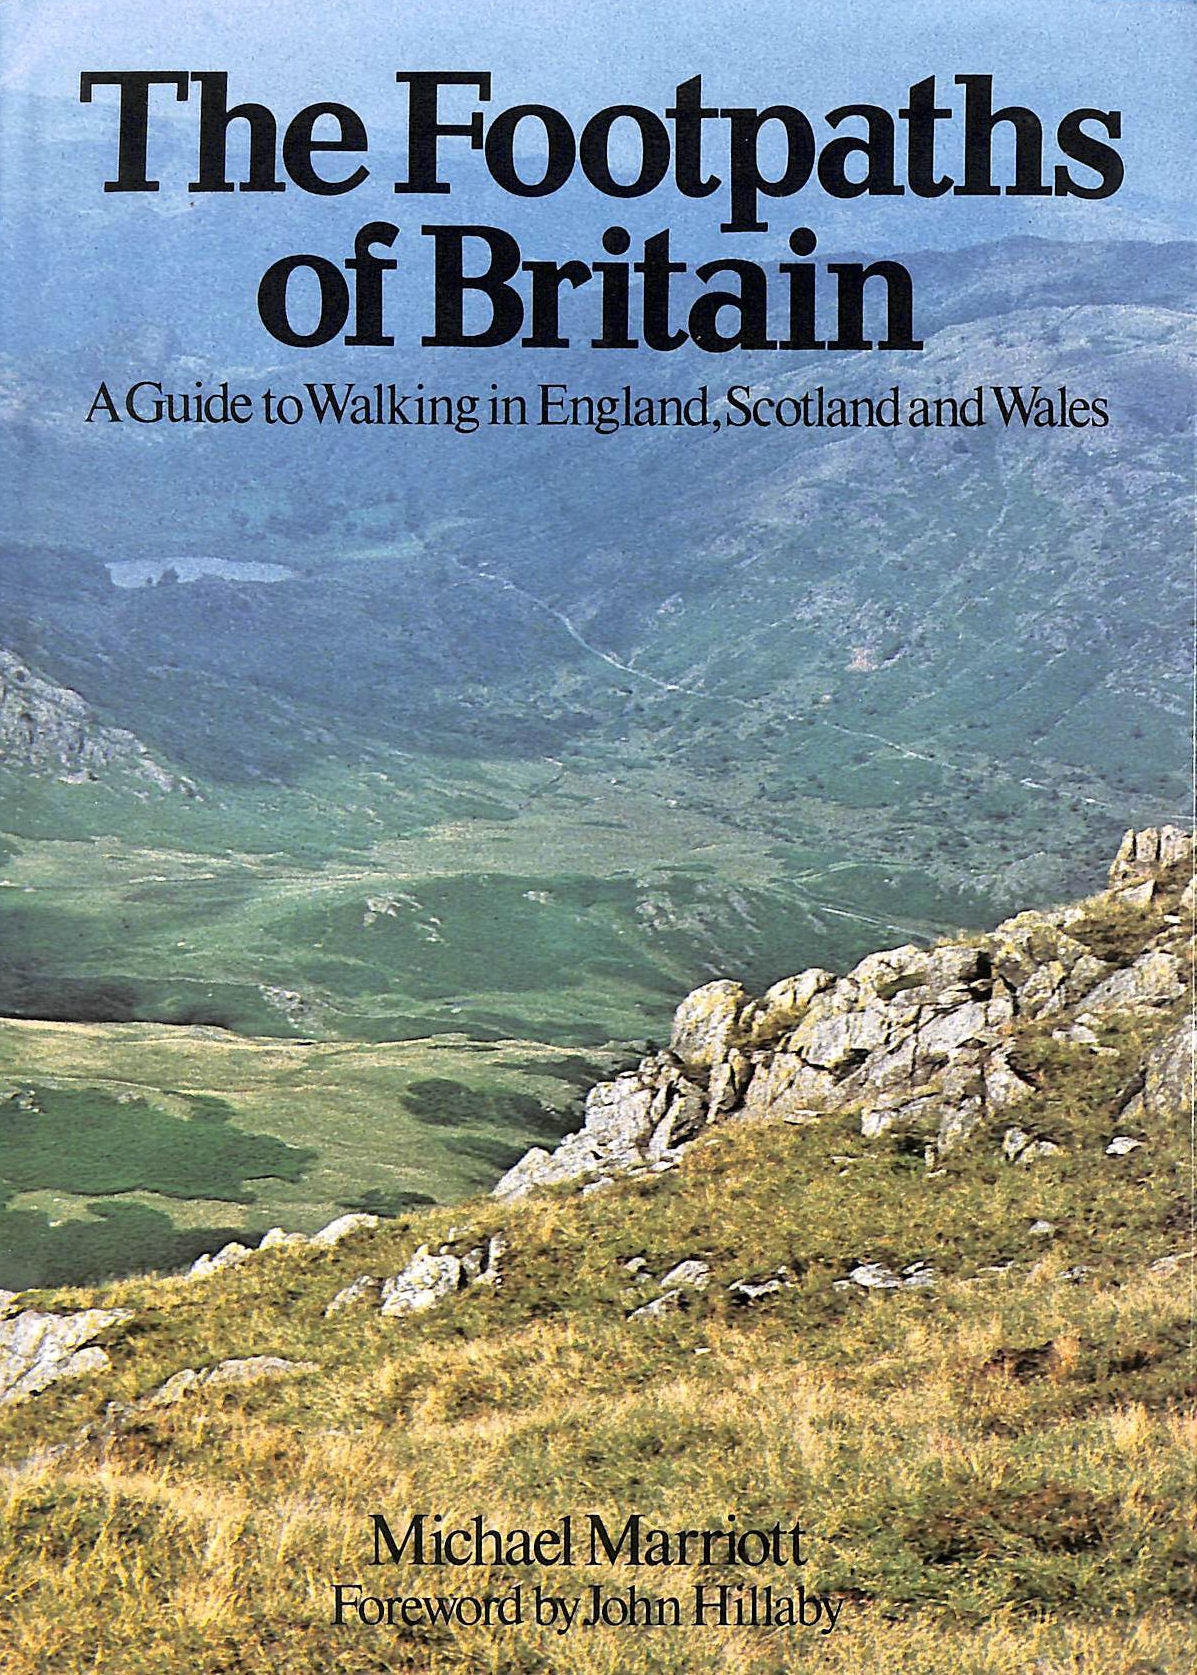 Image for The Footpaths of Britain: A Guide to Walking in England, Scotland and Wales